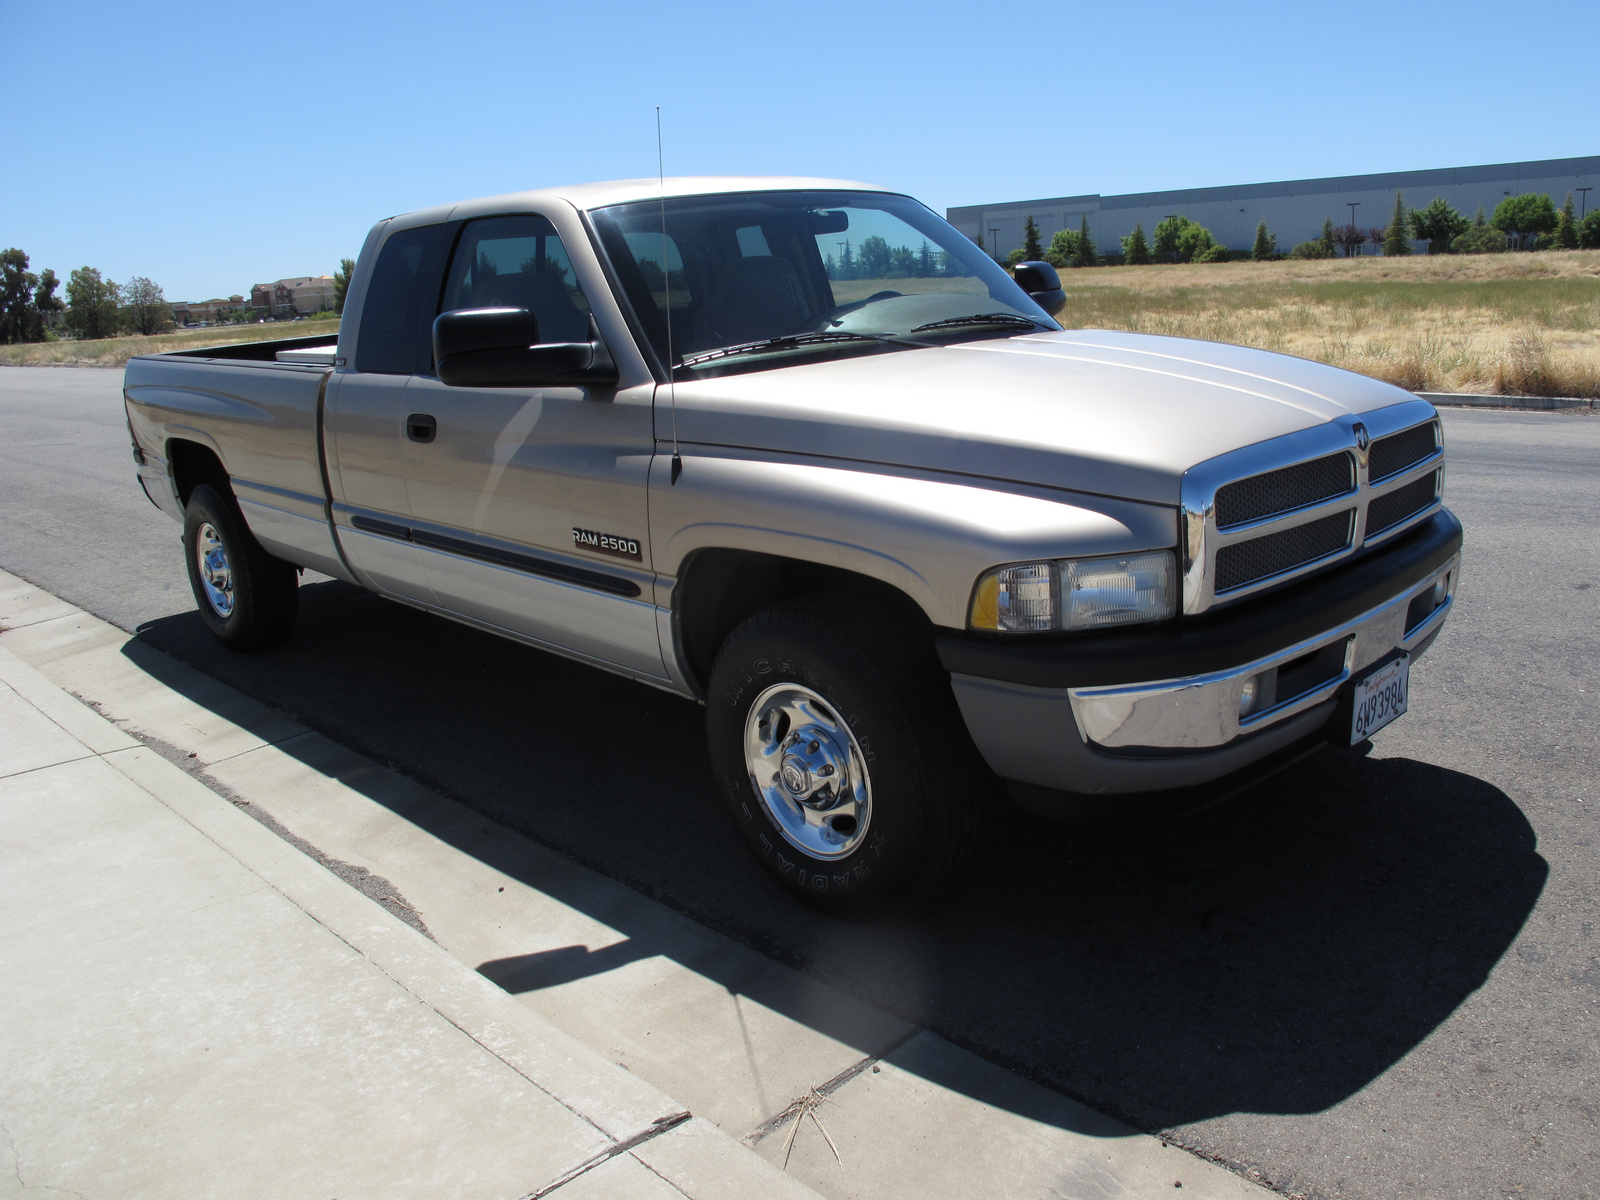 2002 dodge ram pickup 2500 pictures cargurus. Black Bedroom Furniture Sets. Home Design Ideas